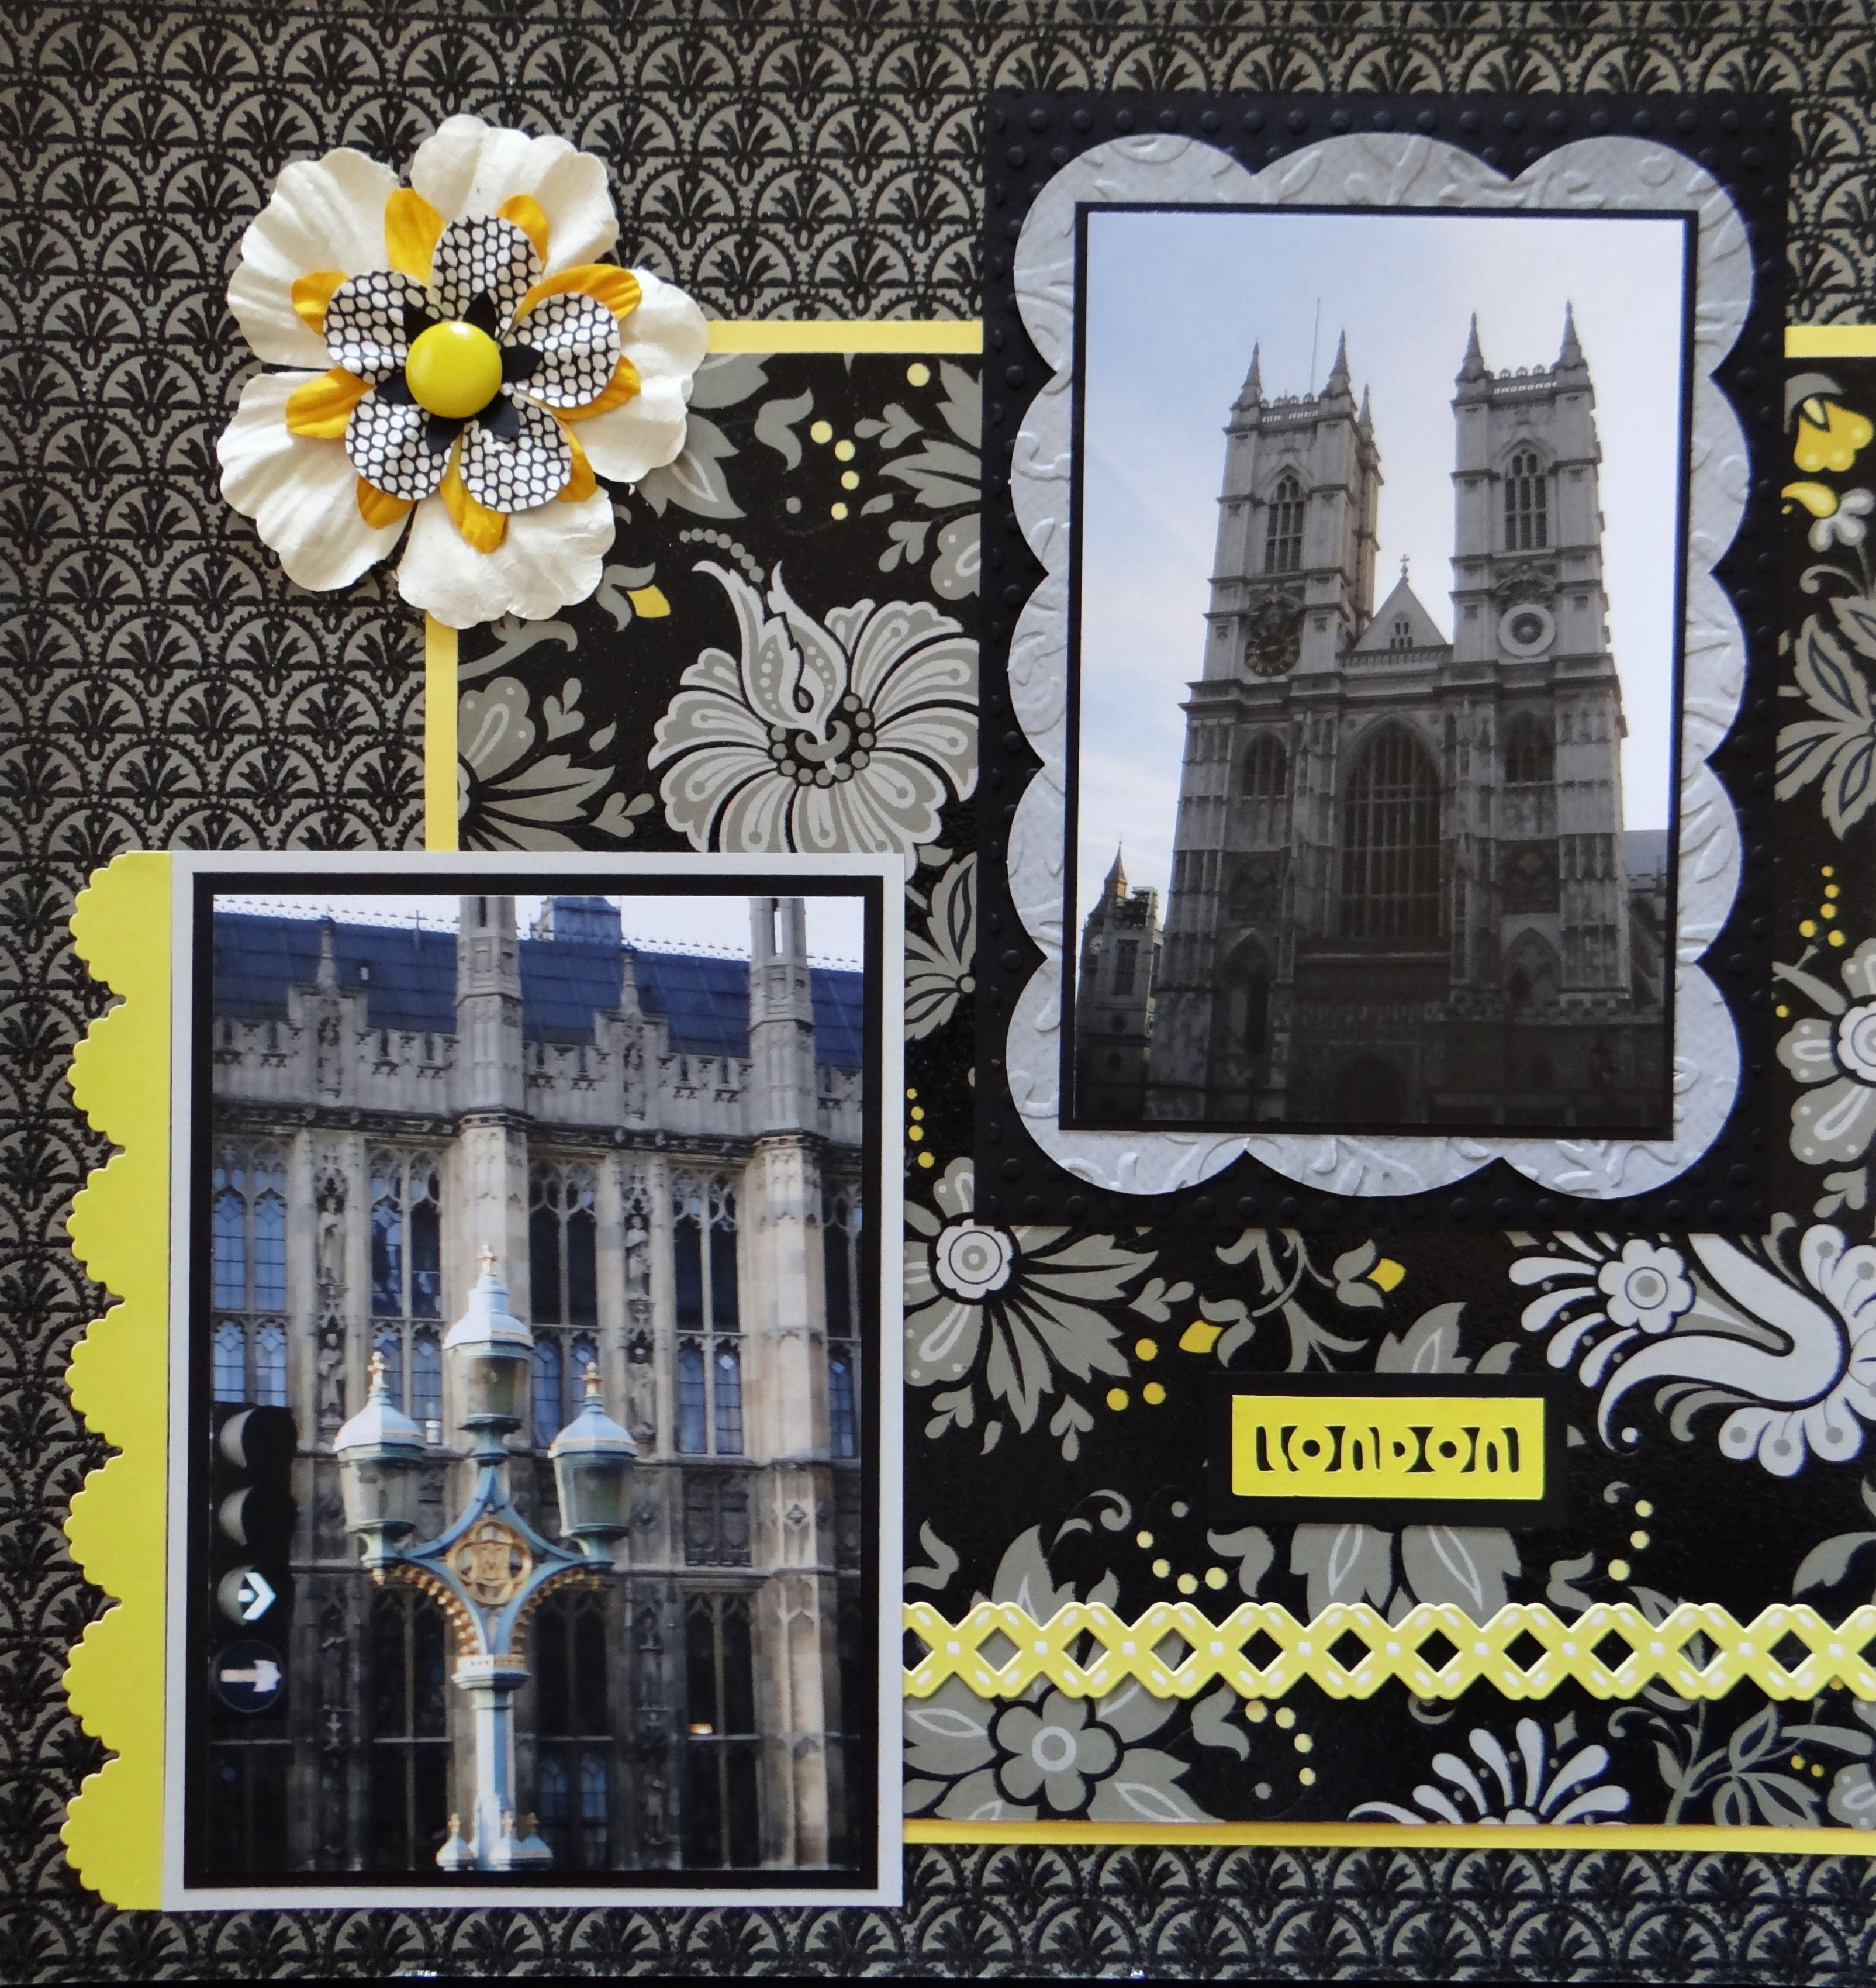 Europe scrapbook ideas - In This Travel Scrapbook Album Of London You Will Find Scrapbook Ideas For Pages Of Big Ben Churches Parliament Buildings The London Eye And The Tube